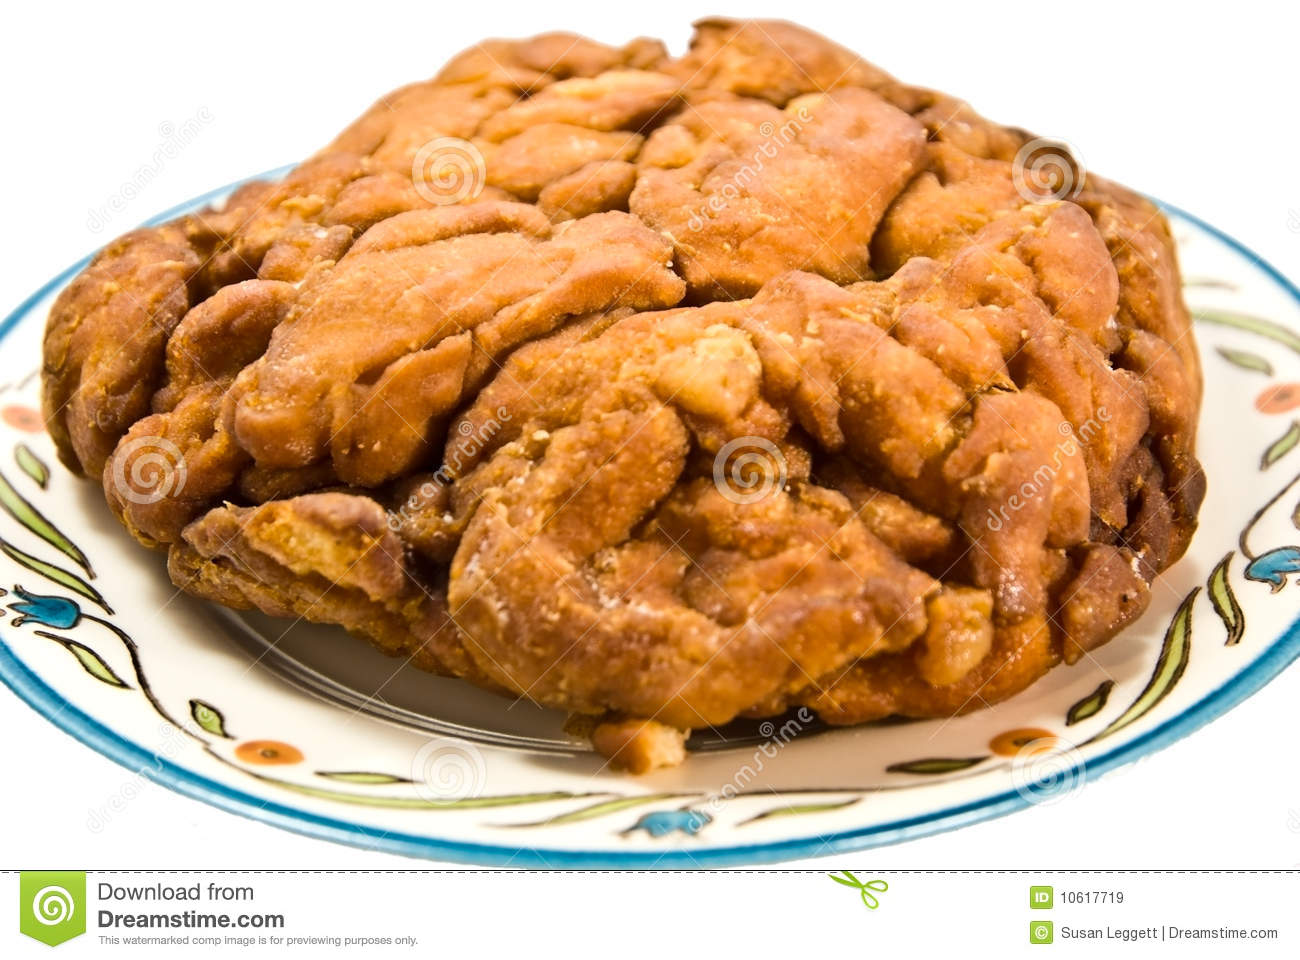 Fried Apple Fritter Royalty Free Stock Images - Image: 10617719